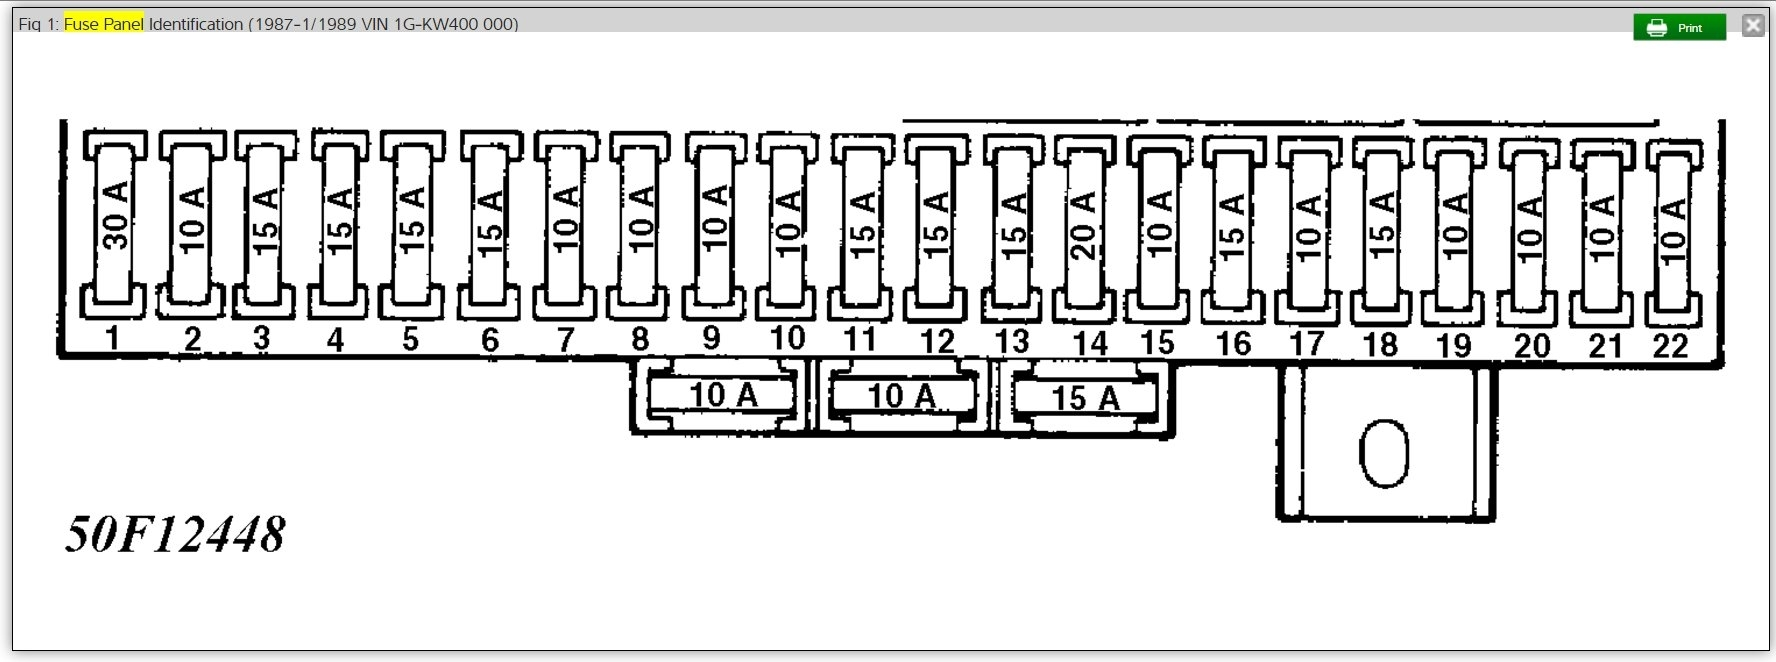 Fuse Box Diagram  Jetta2 Cli Fuse Box Diagram